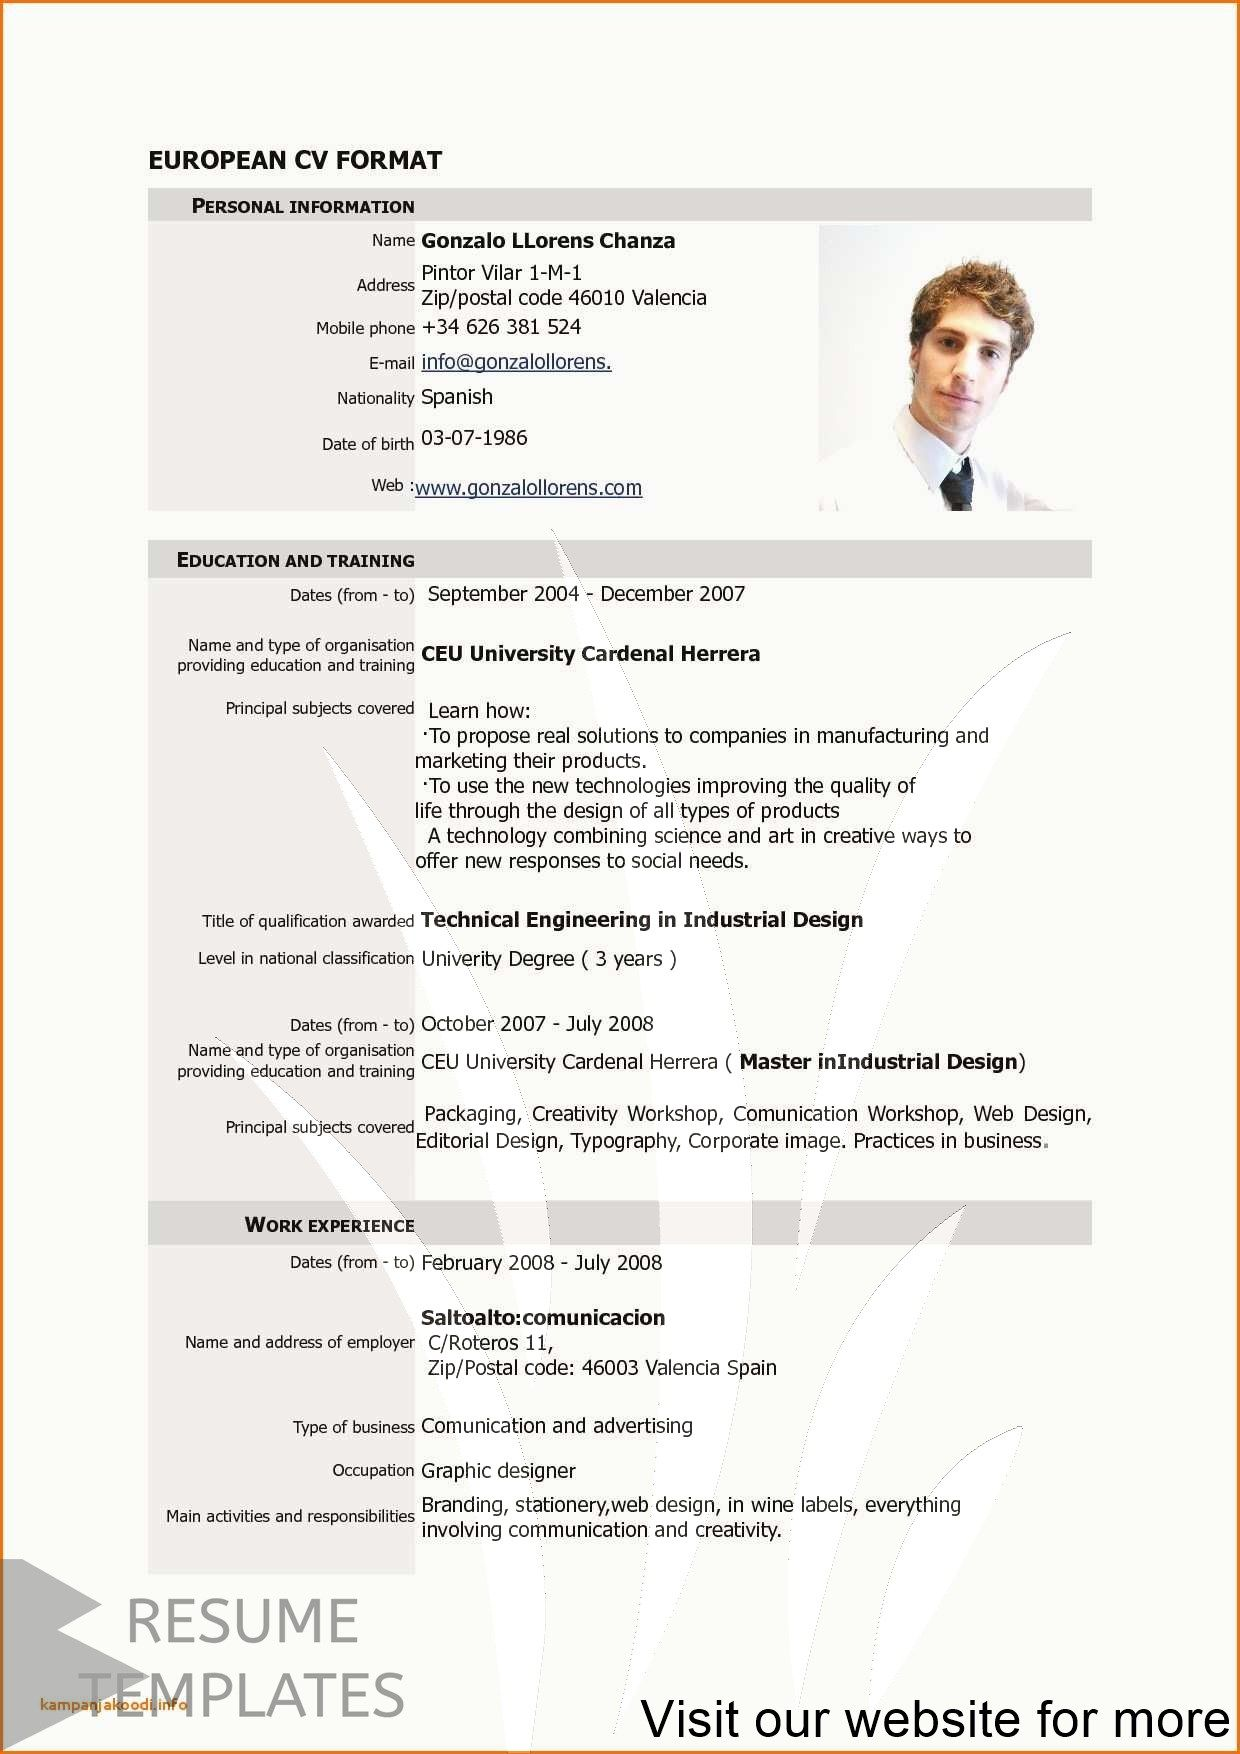 resume examples professional template writing tips objective for maintenance supervisor Resume Resume Writing Tips 2018